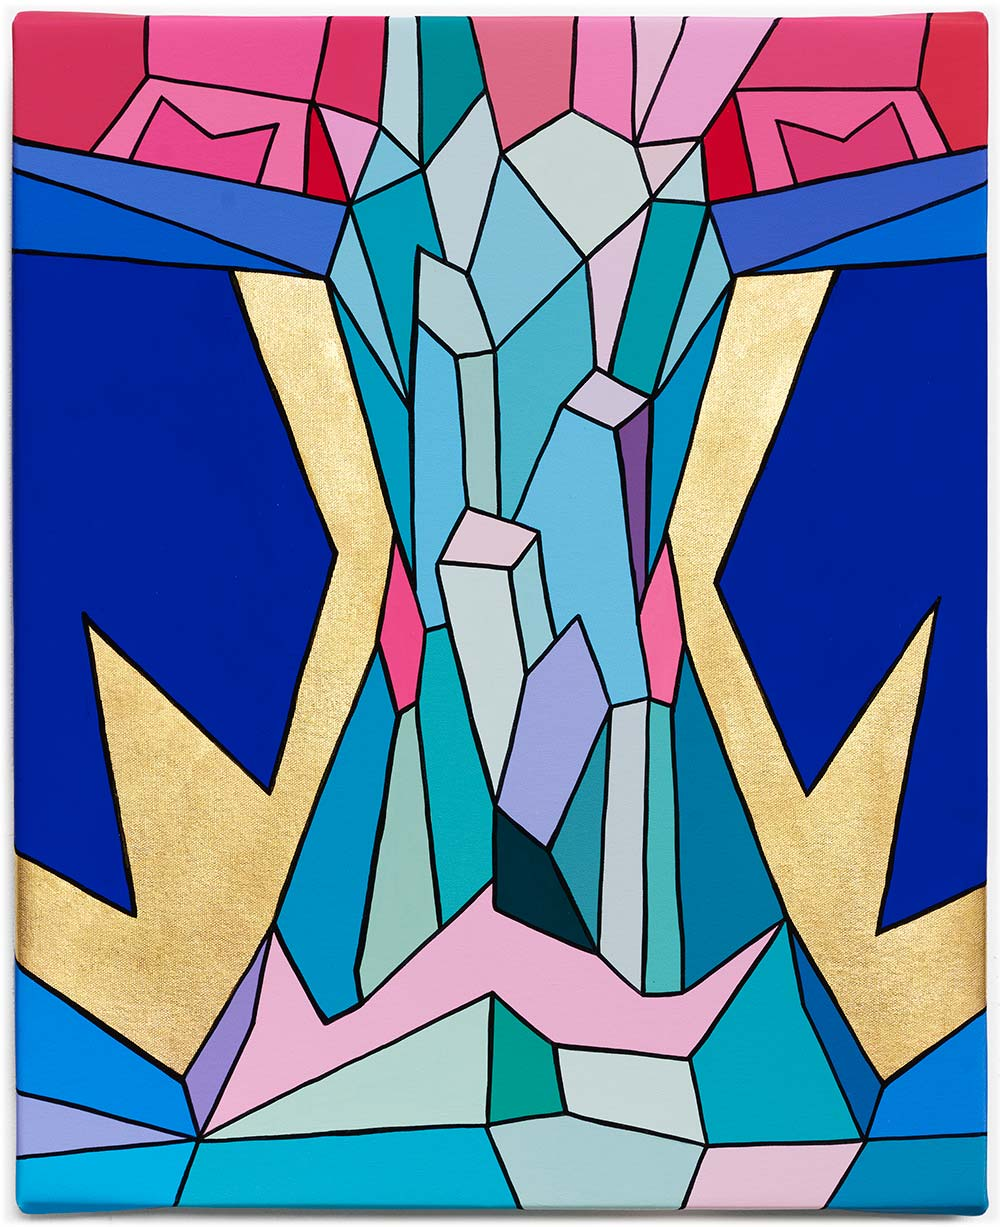 Crystal King Pink Borealis original painting by Happy Sleepy